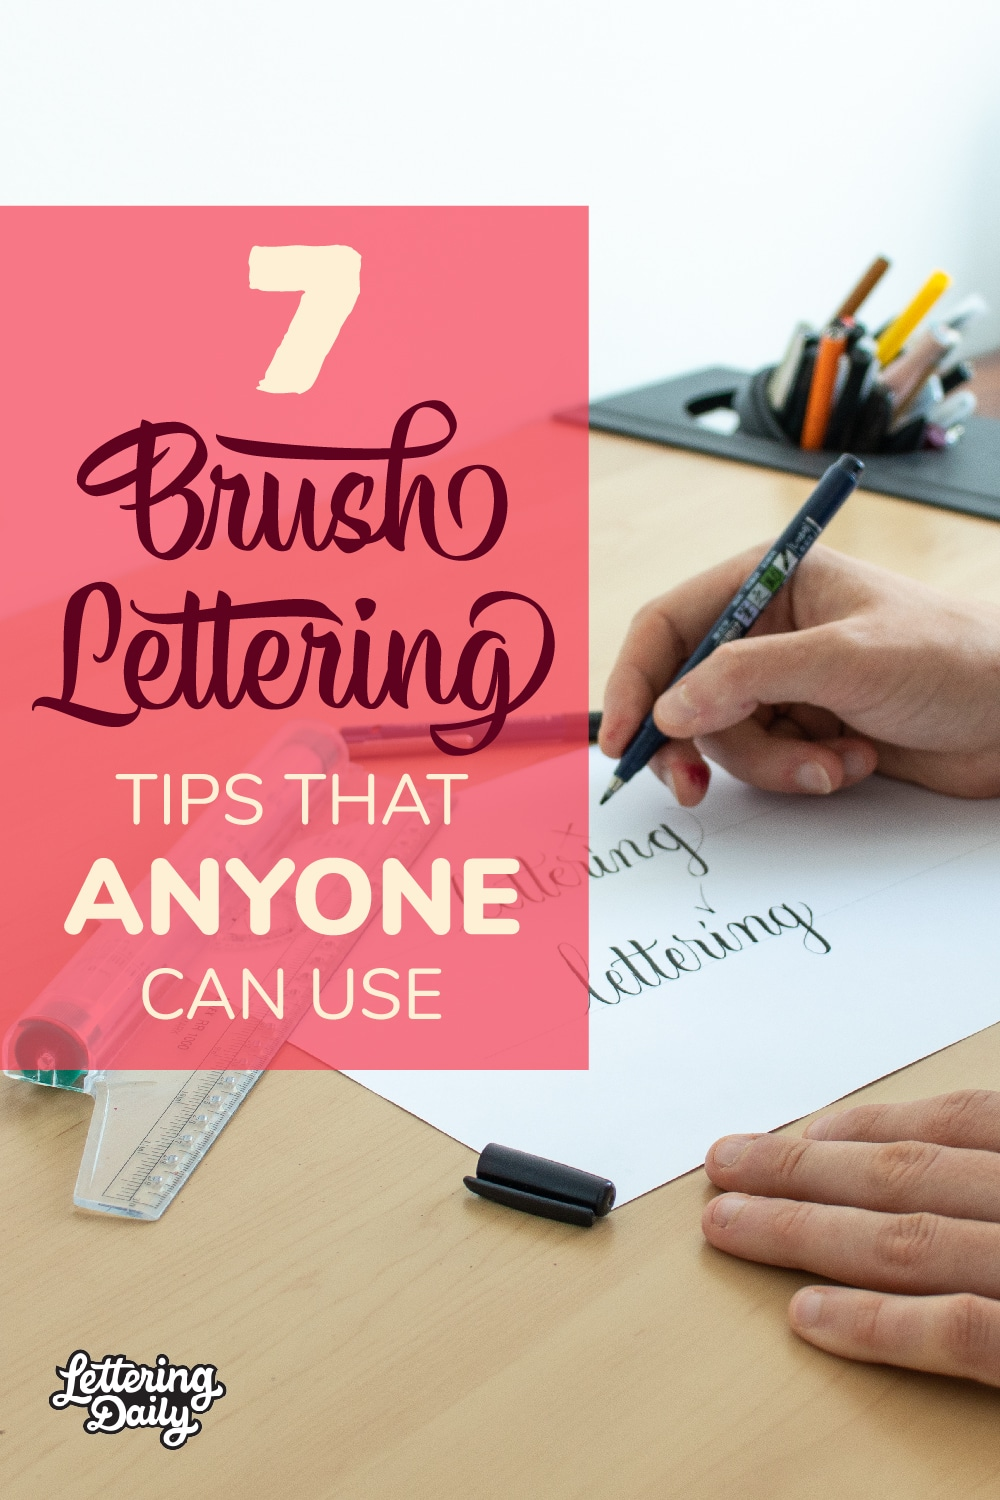 7 Brush Lettering Tips That Anyone Can Use - Lettering Daily Pinterest Pin